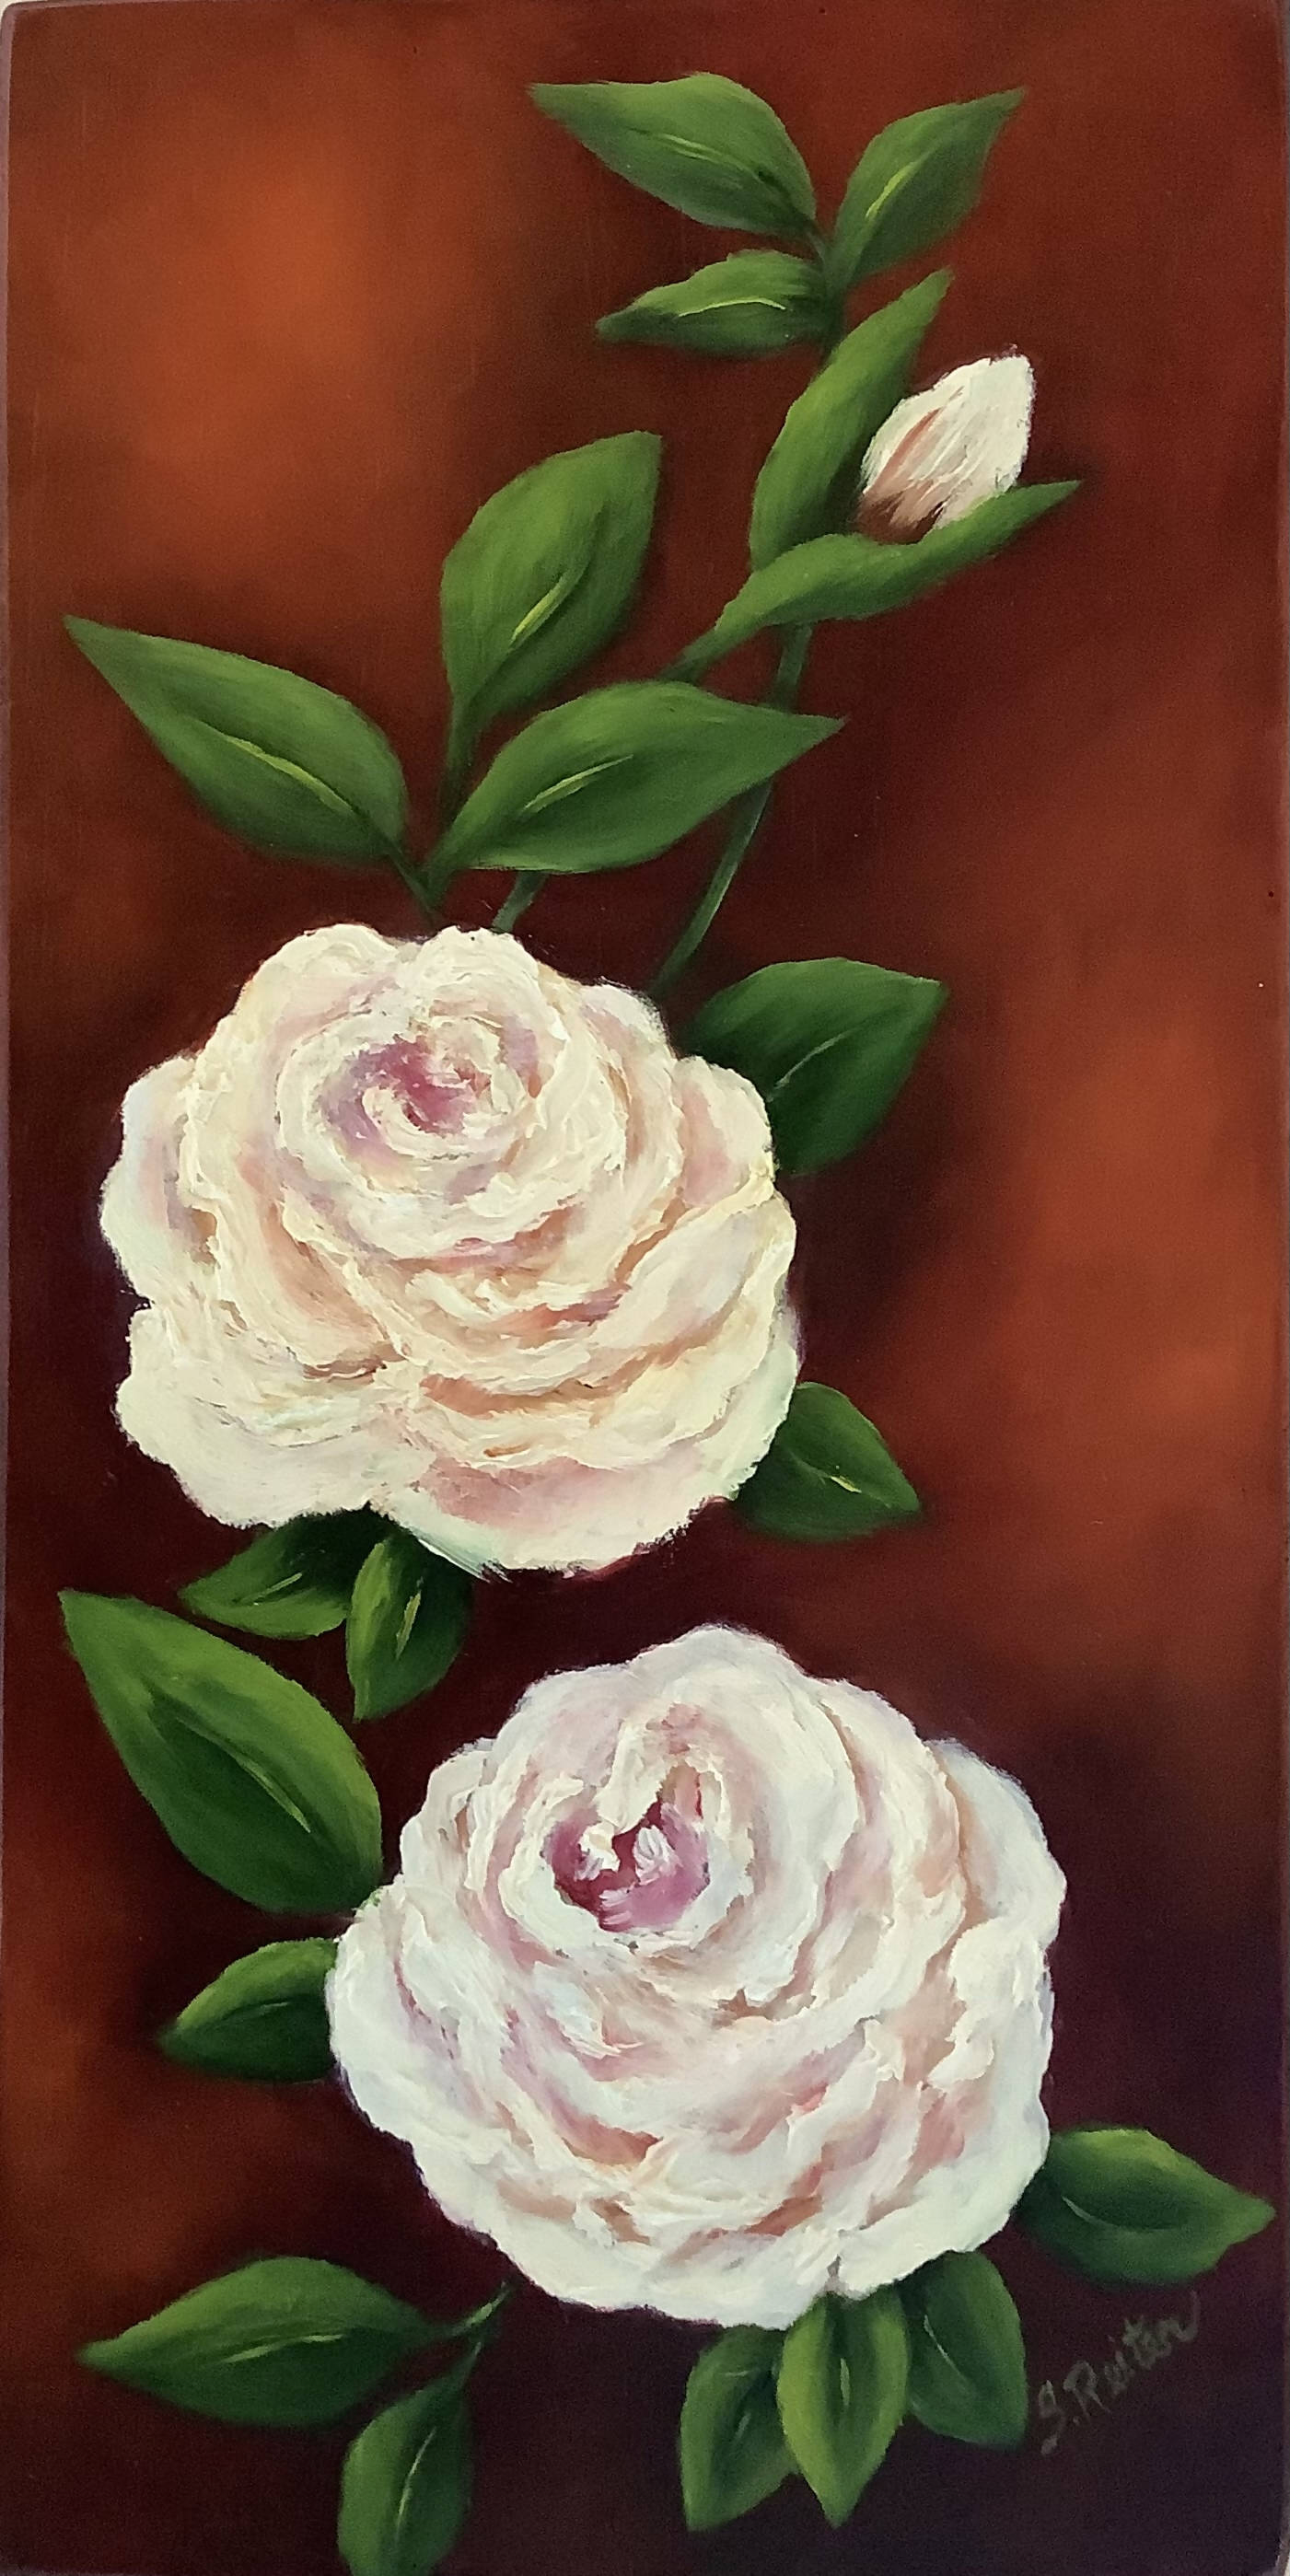 Gallery Board Canvas Hand Painted in Oils with 2 White Roses- Original Design